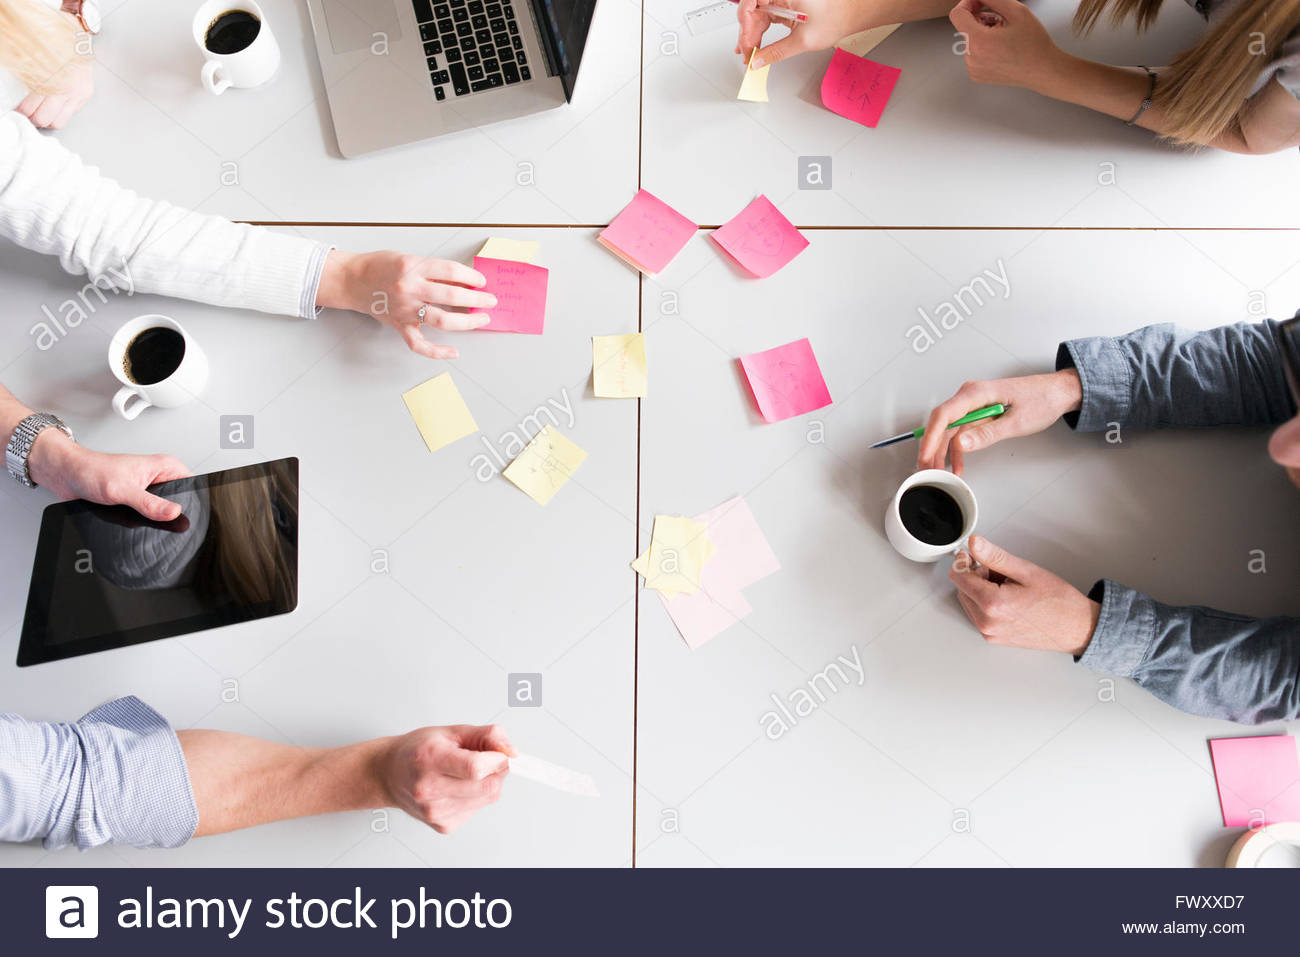 Sweden, Directly above view of adhesive notes on conference table - Stock Image